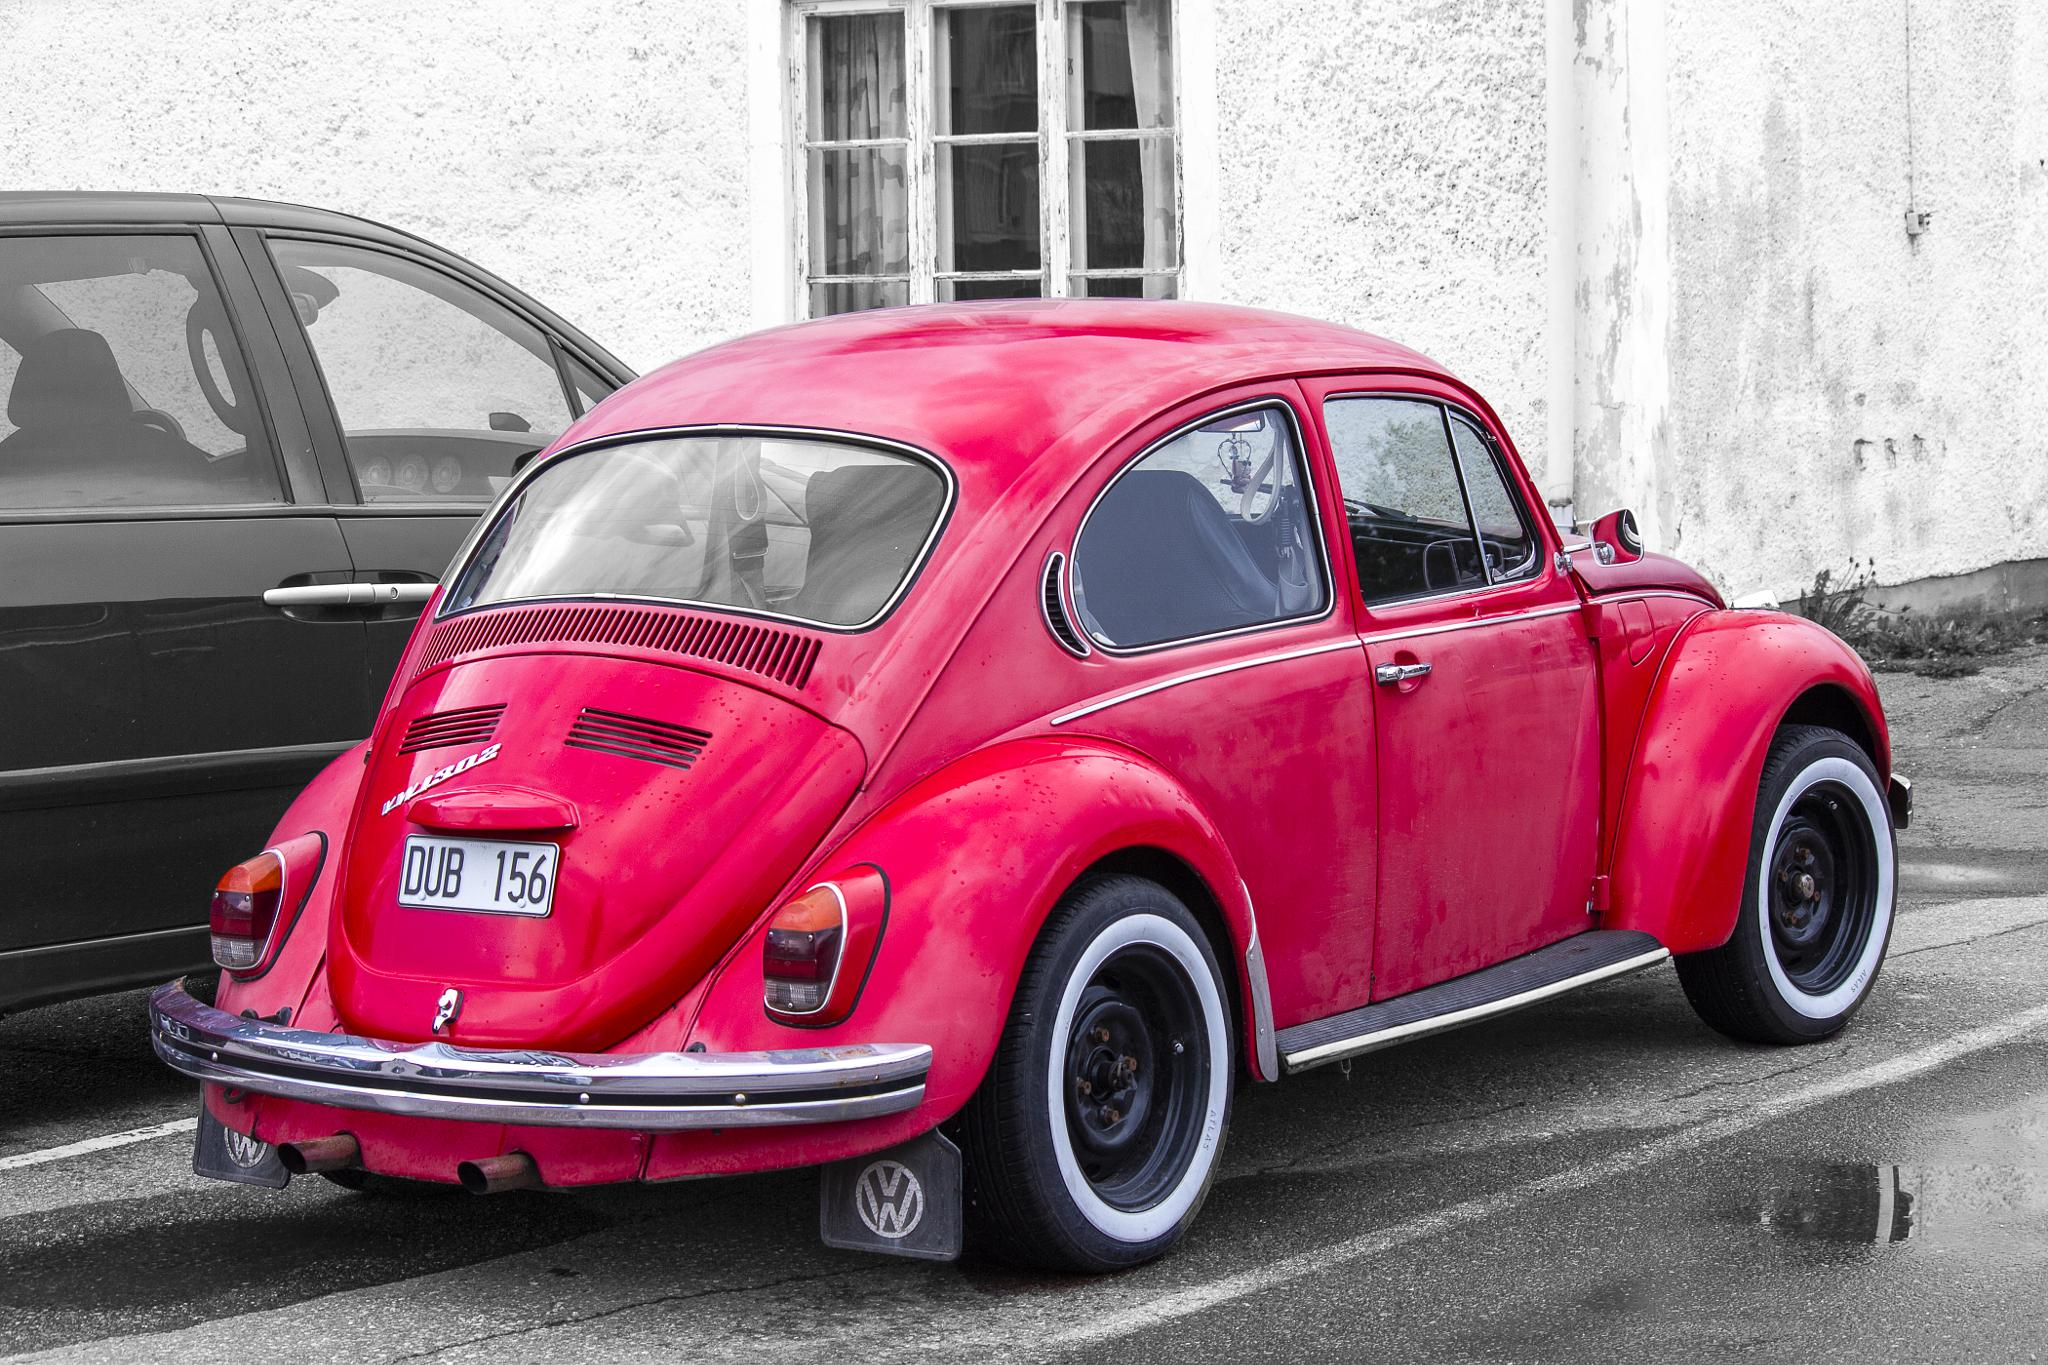 Volkswagen (Linda Persson-style) by Carl Hult